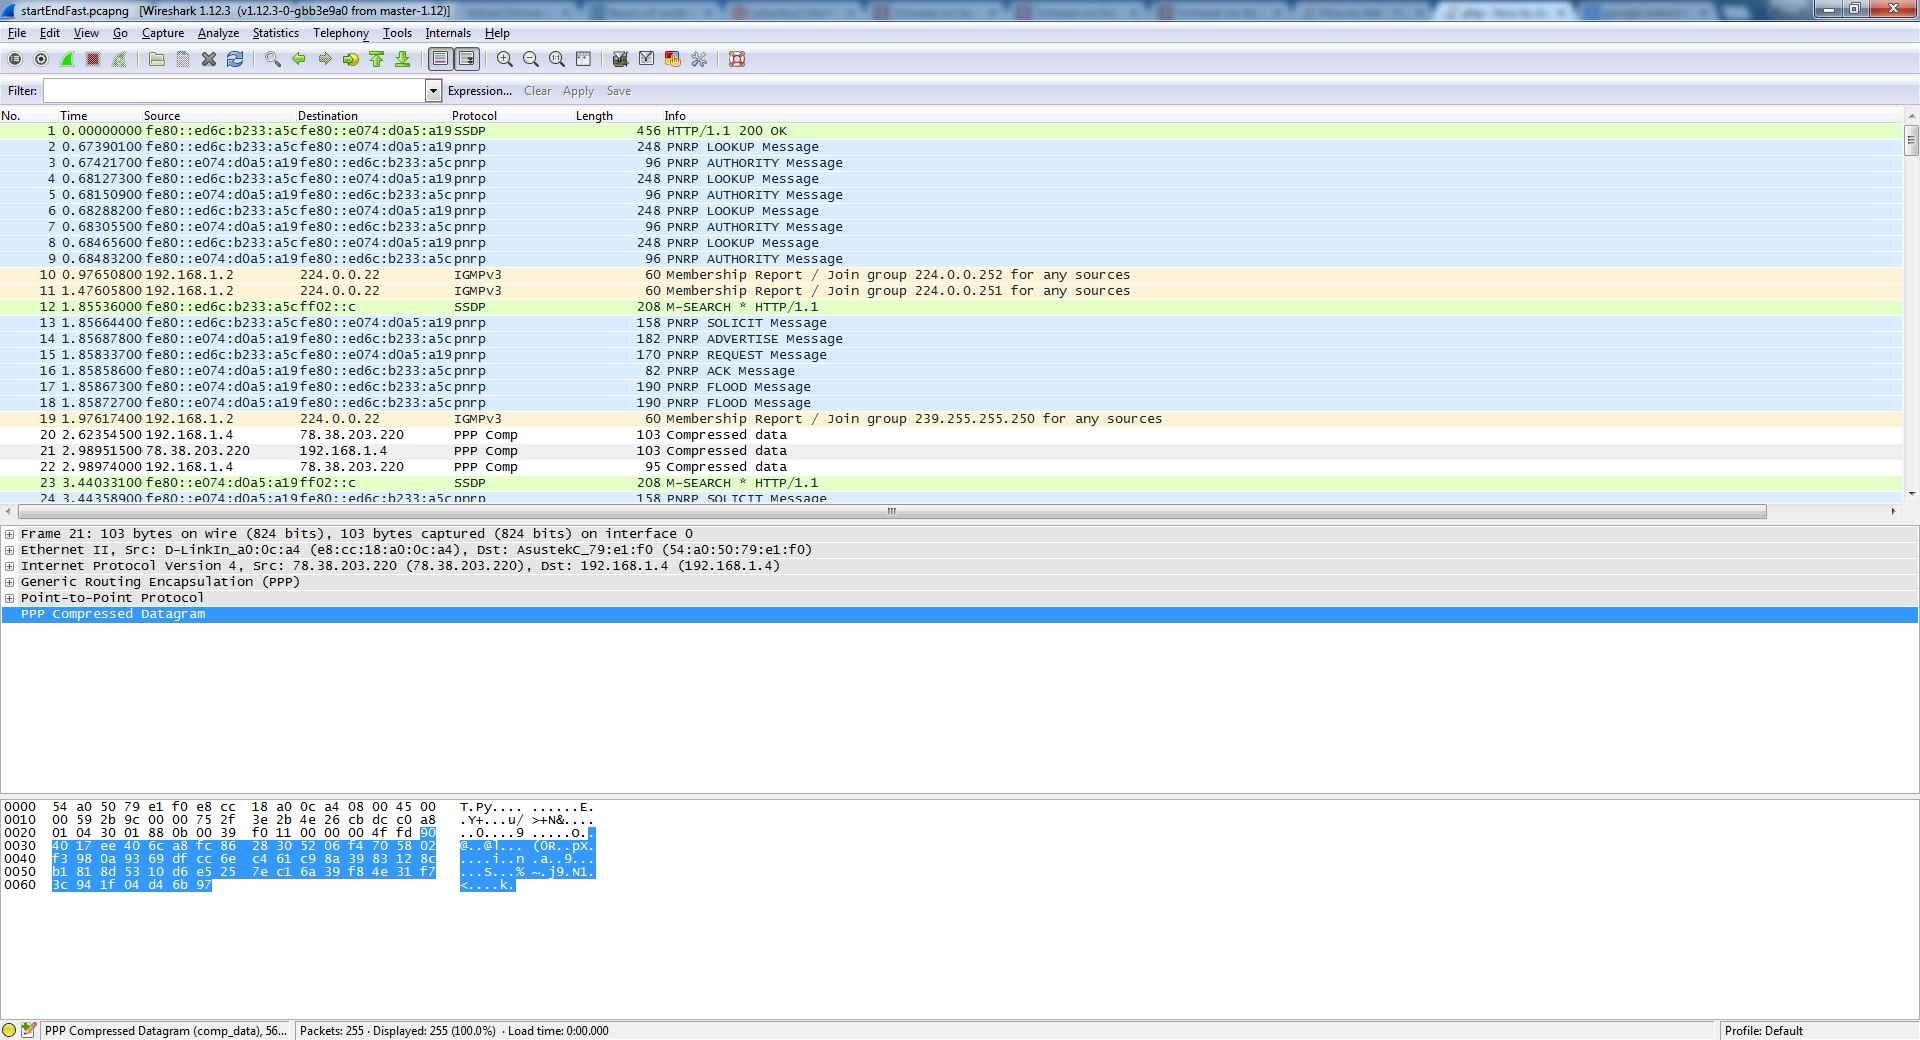 Wireshark captured of ppp transaction